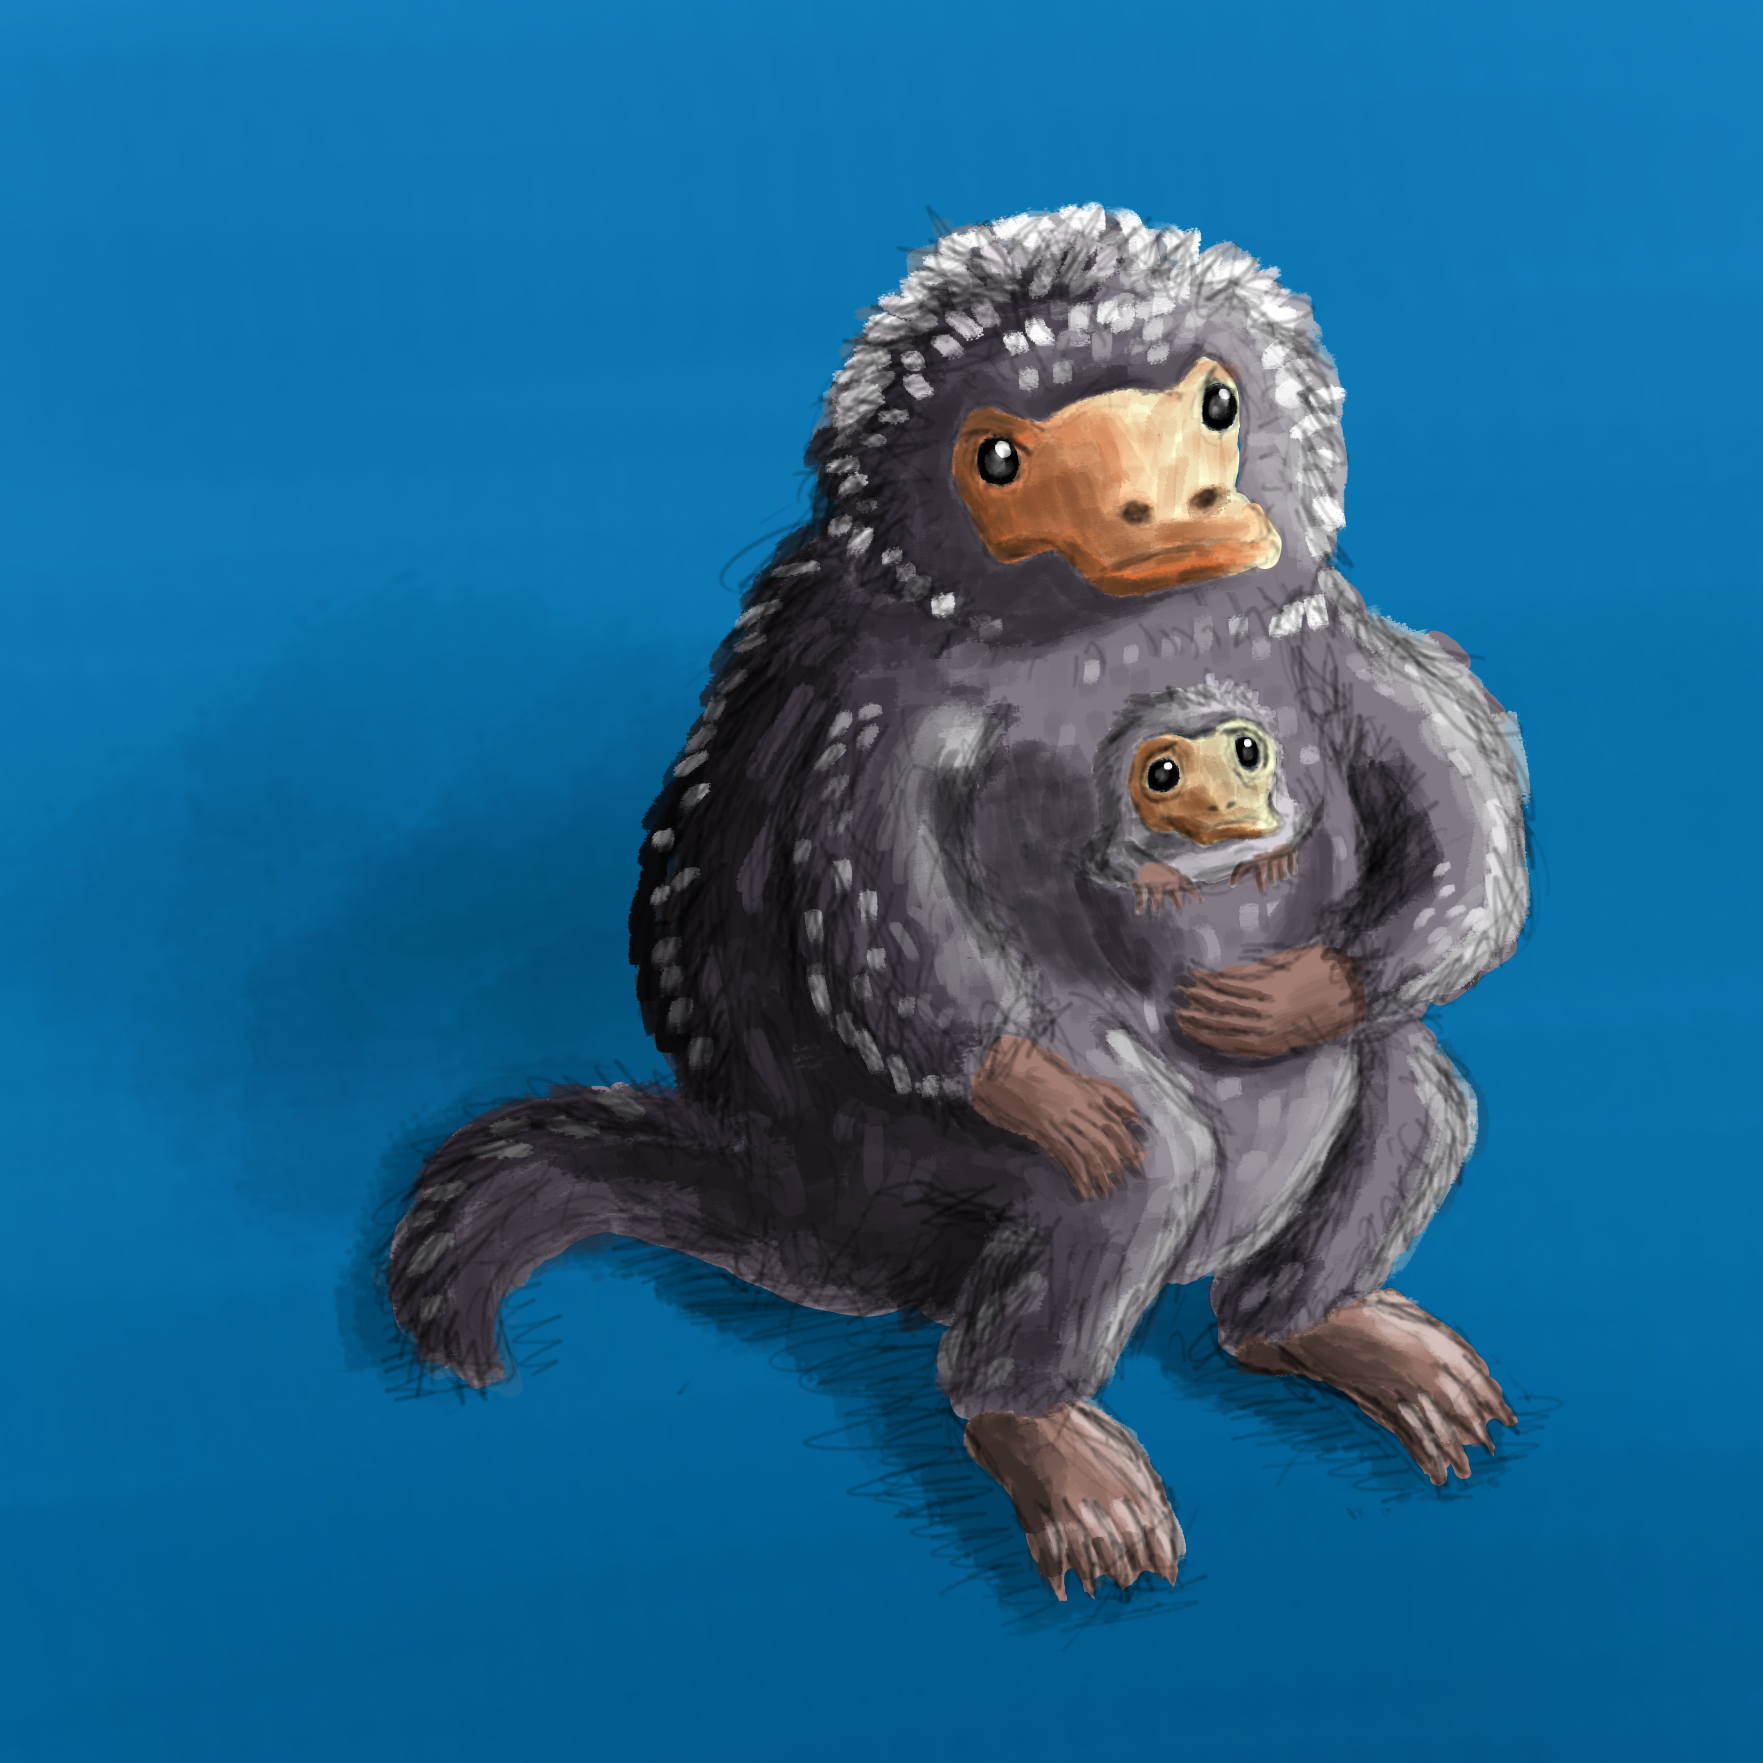 A niffler with a baby niffler in its pocket